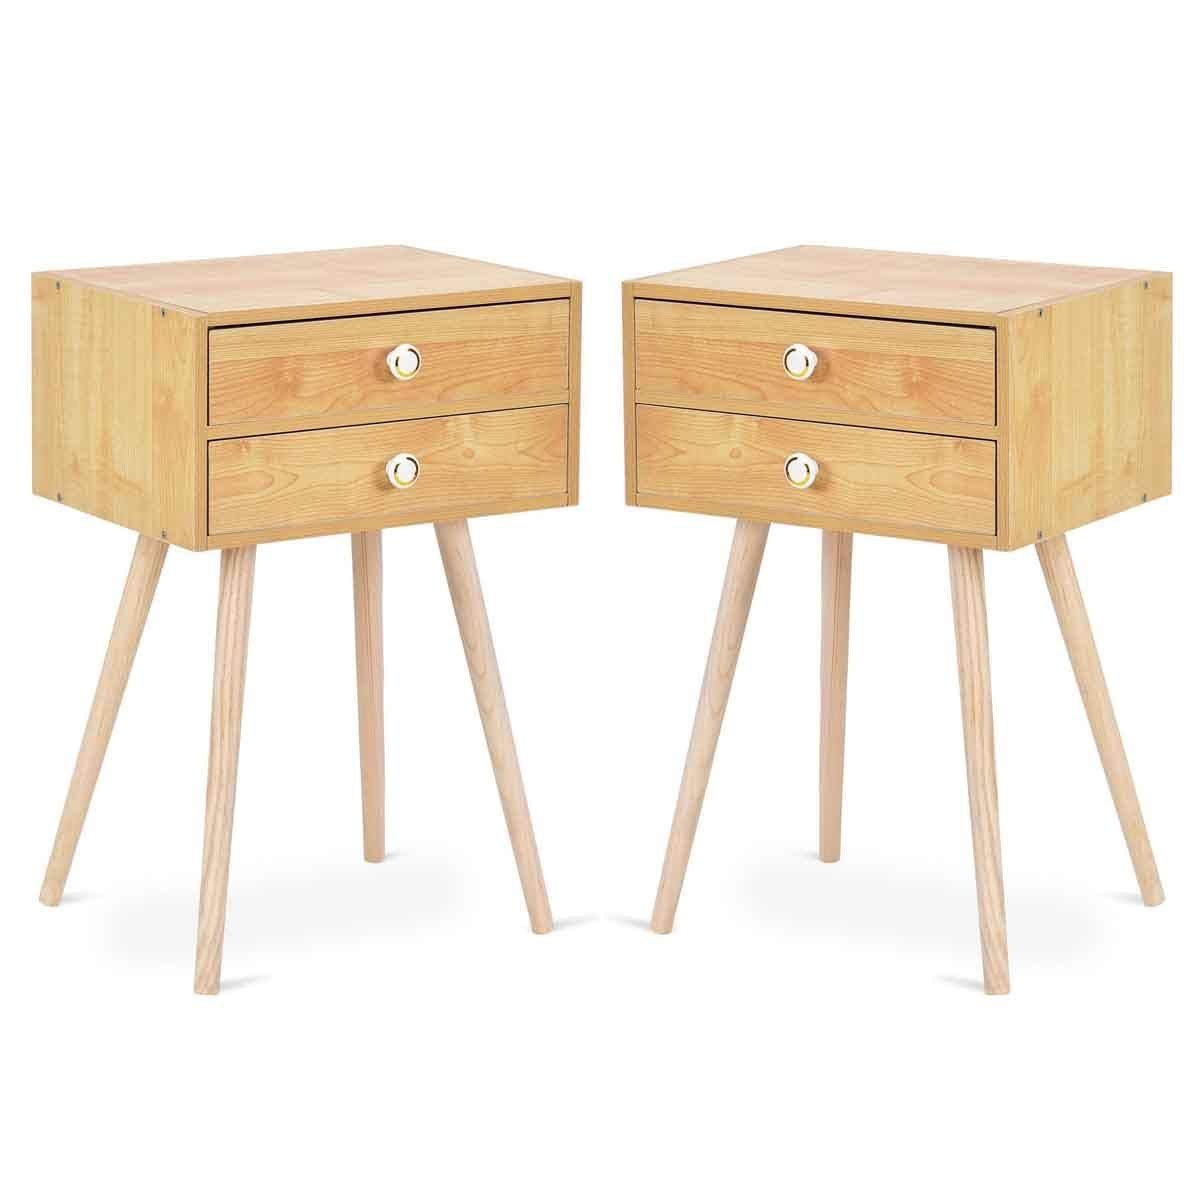 Giantex Set of 2 Nightstand W/2 Drawers for Bedroom Living Room Small Spaces Modern Home Furniture Simple Natural Legs Storage End Side Tables (2) by Giantex